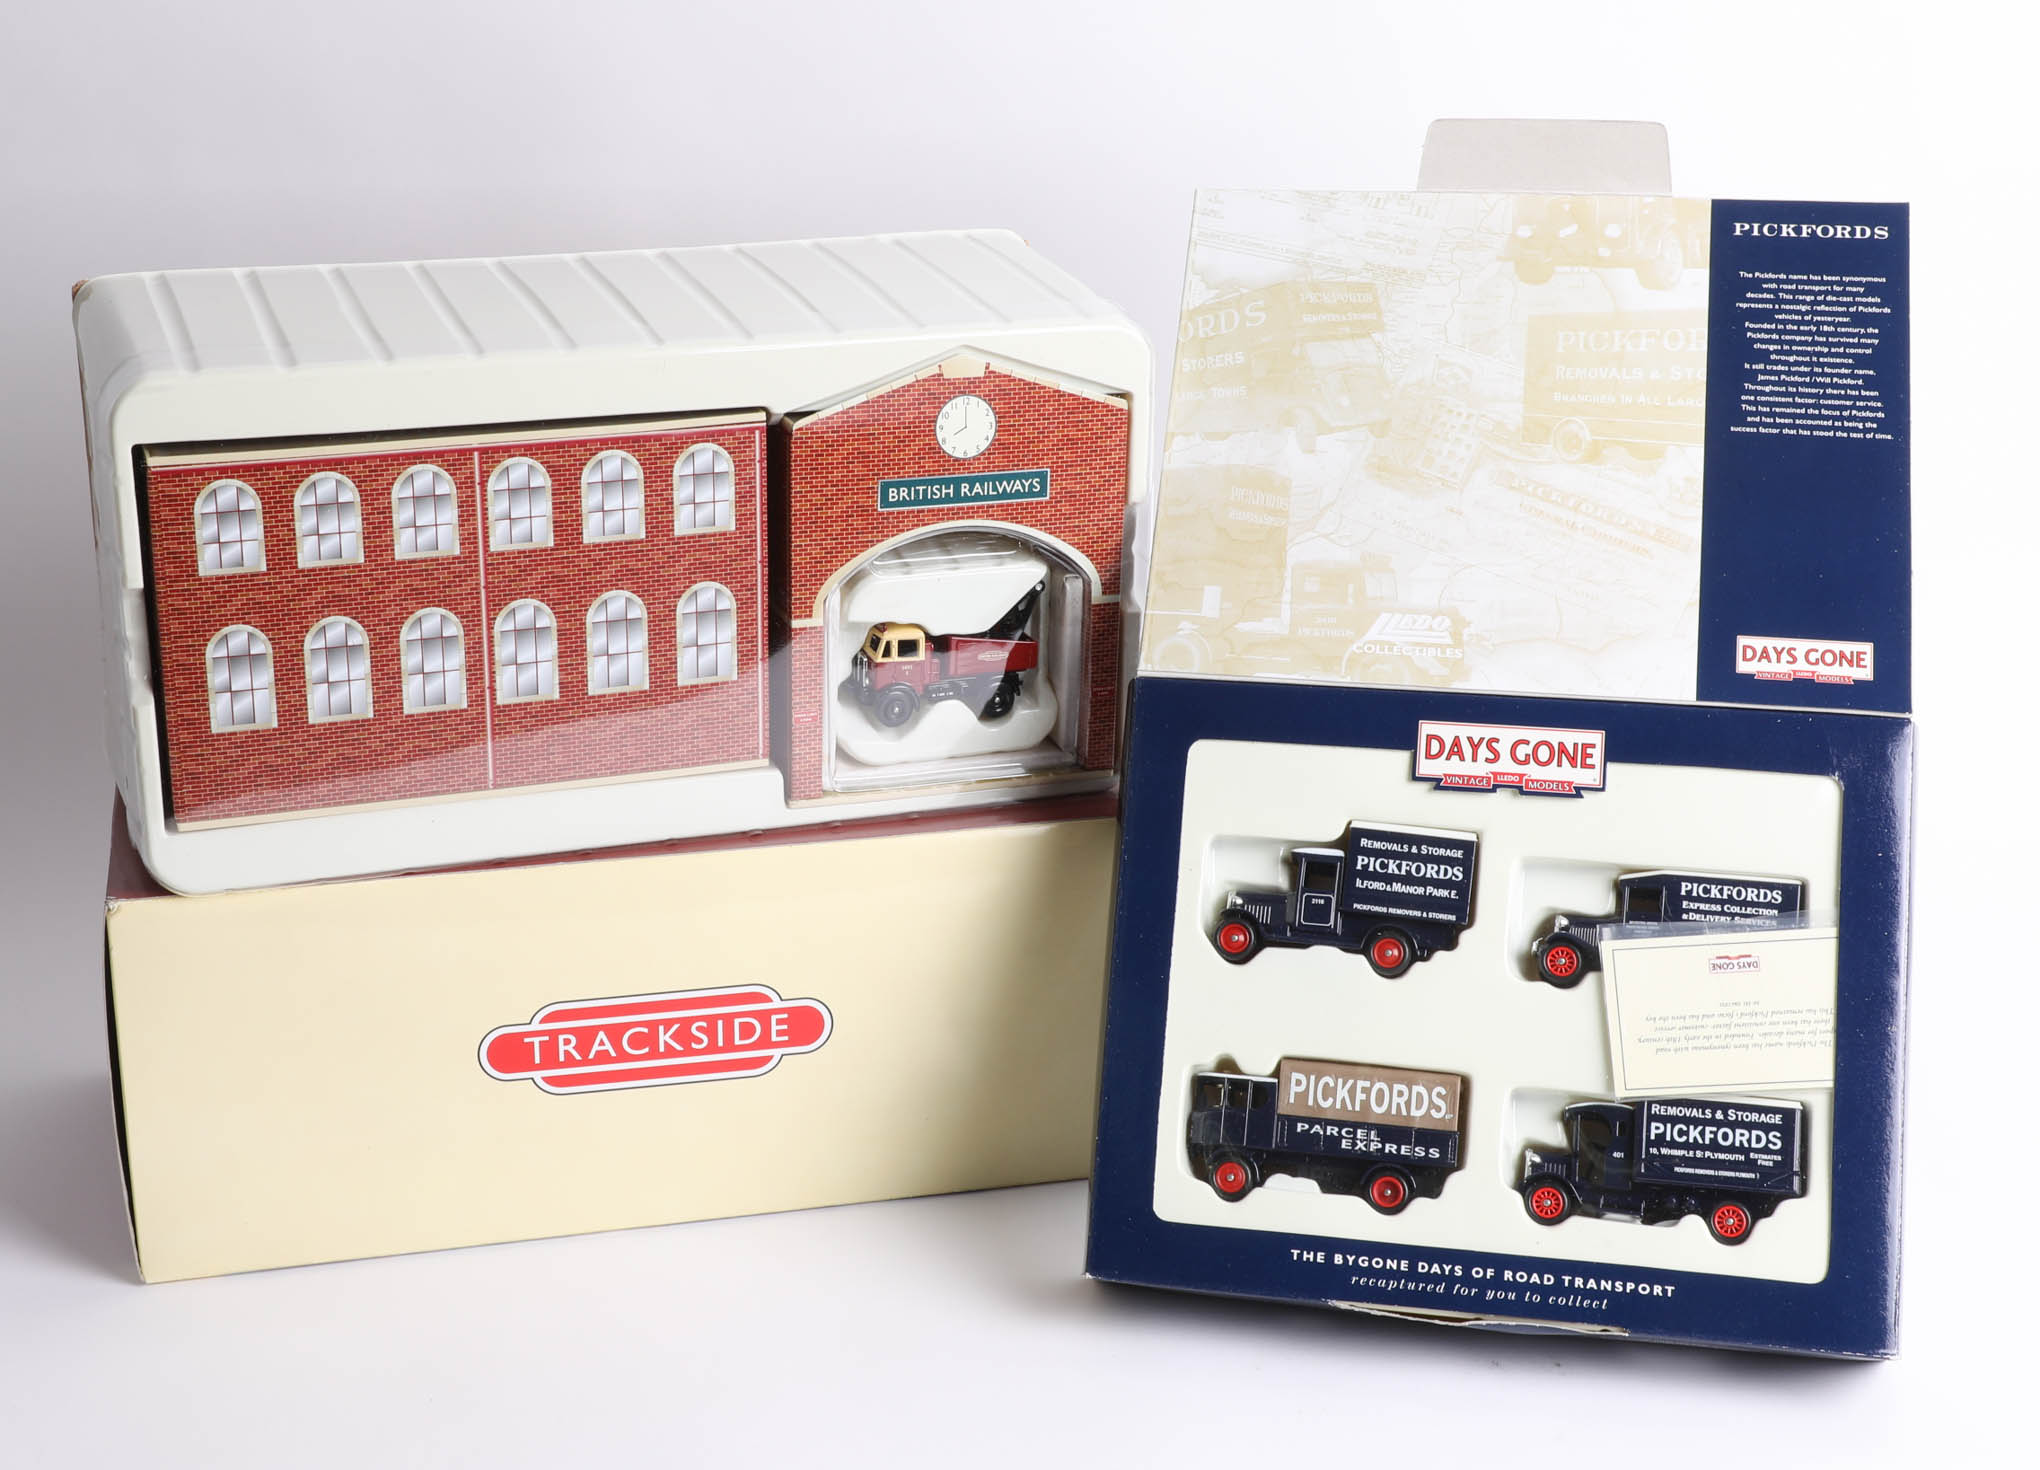 Two Days Gone 'The Bygone Days of Road Transport' sets including a British Rail depot and A.E.C.